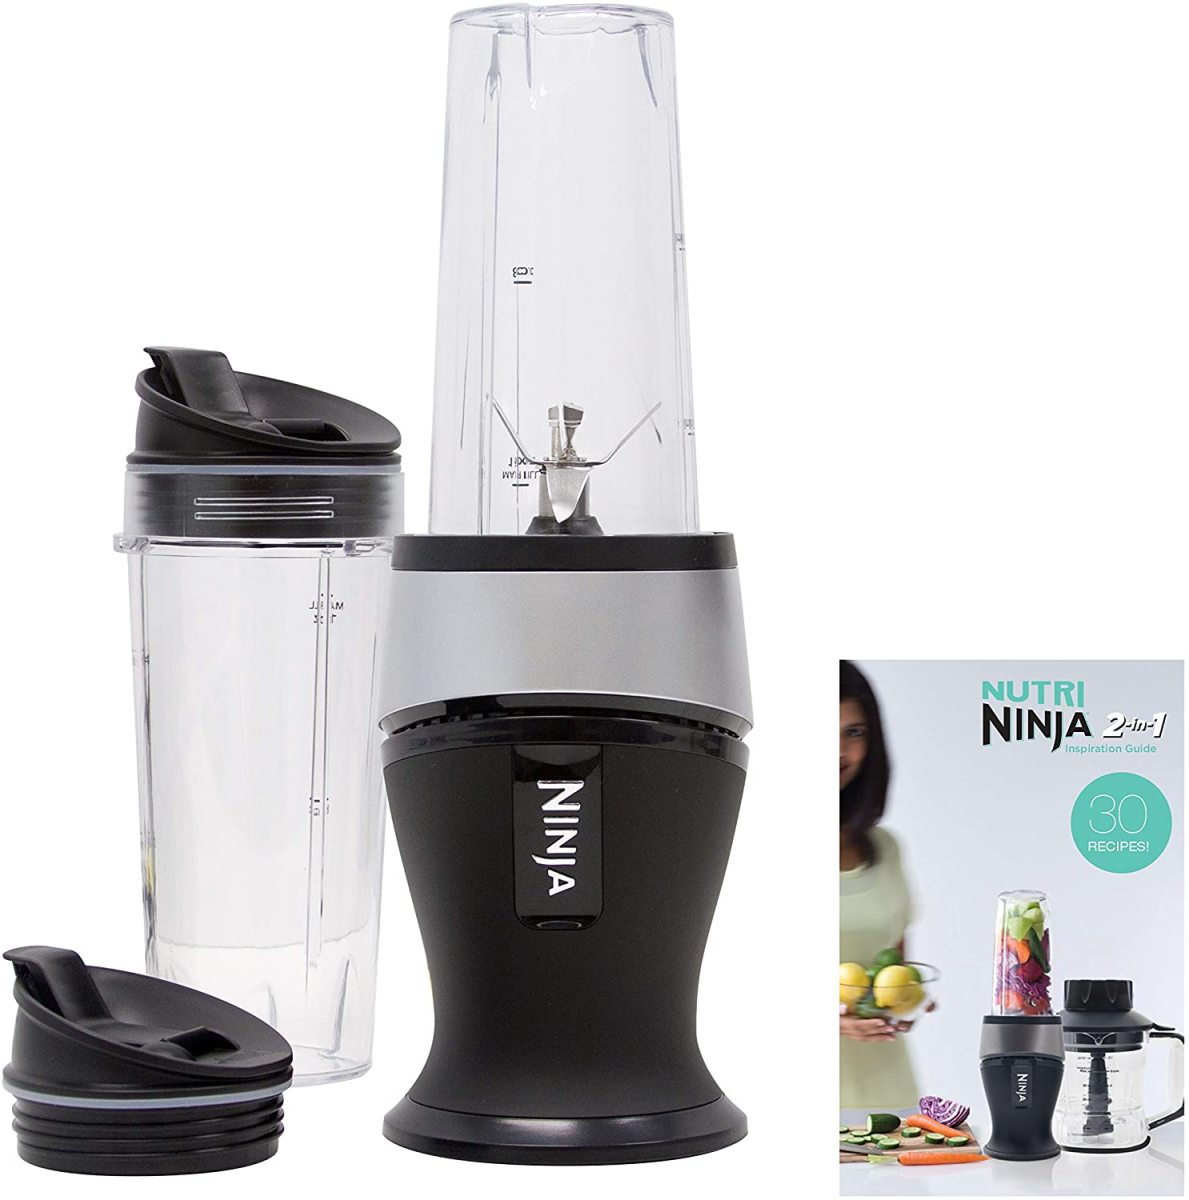 The Ninja Personal Blender for Shakes, Smoothies, Food Prep, and Frozen Blending